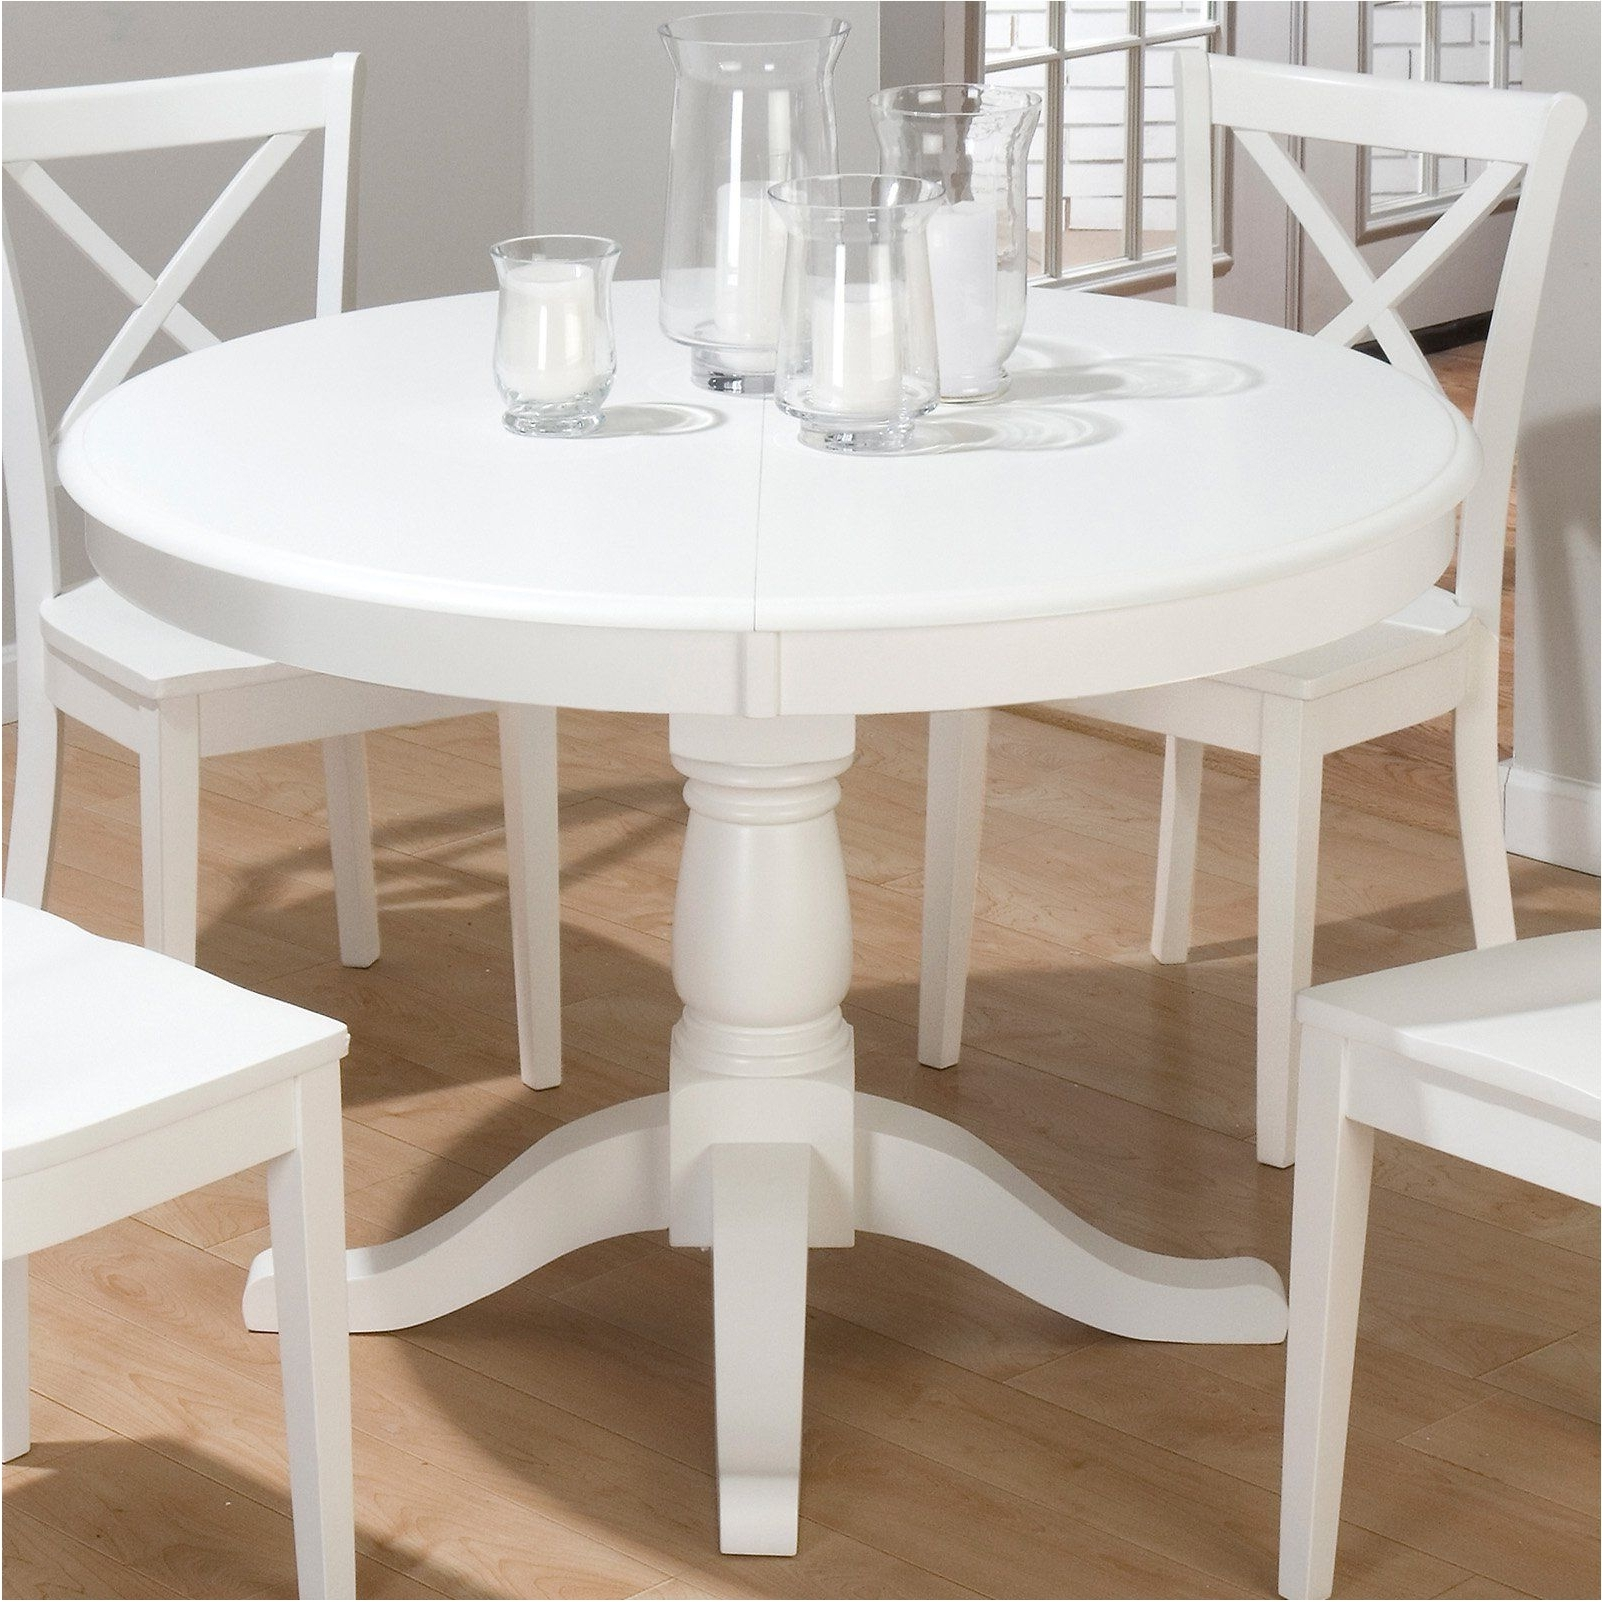 Small Round White Dining Tables Within Most Popular Magnificent Decorative Small Round White Dining Table 17 Kitchen (View 4 of 25)